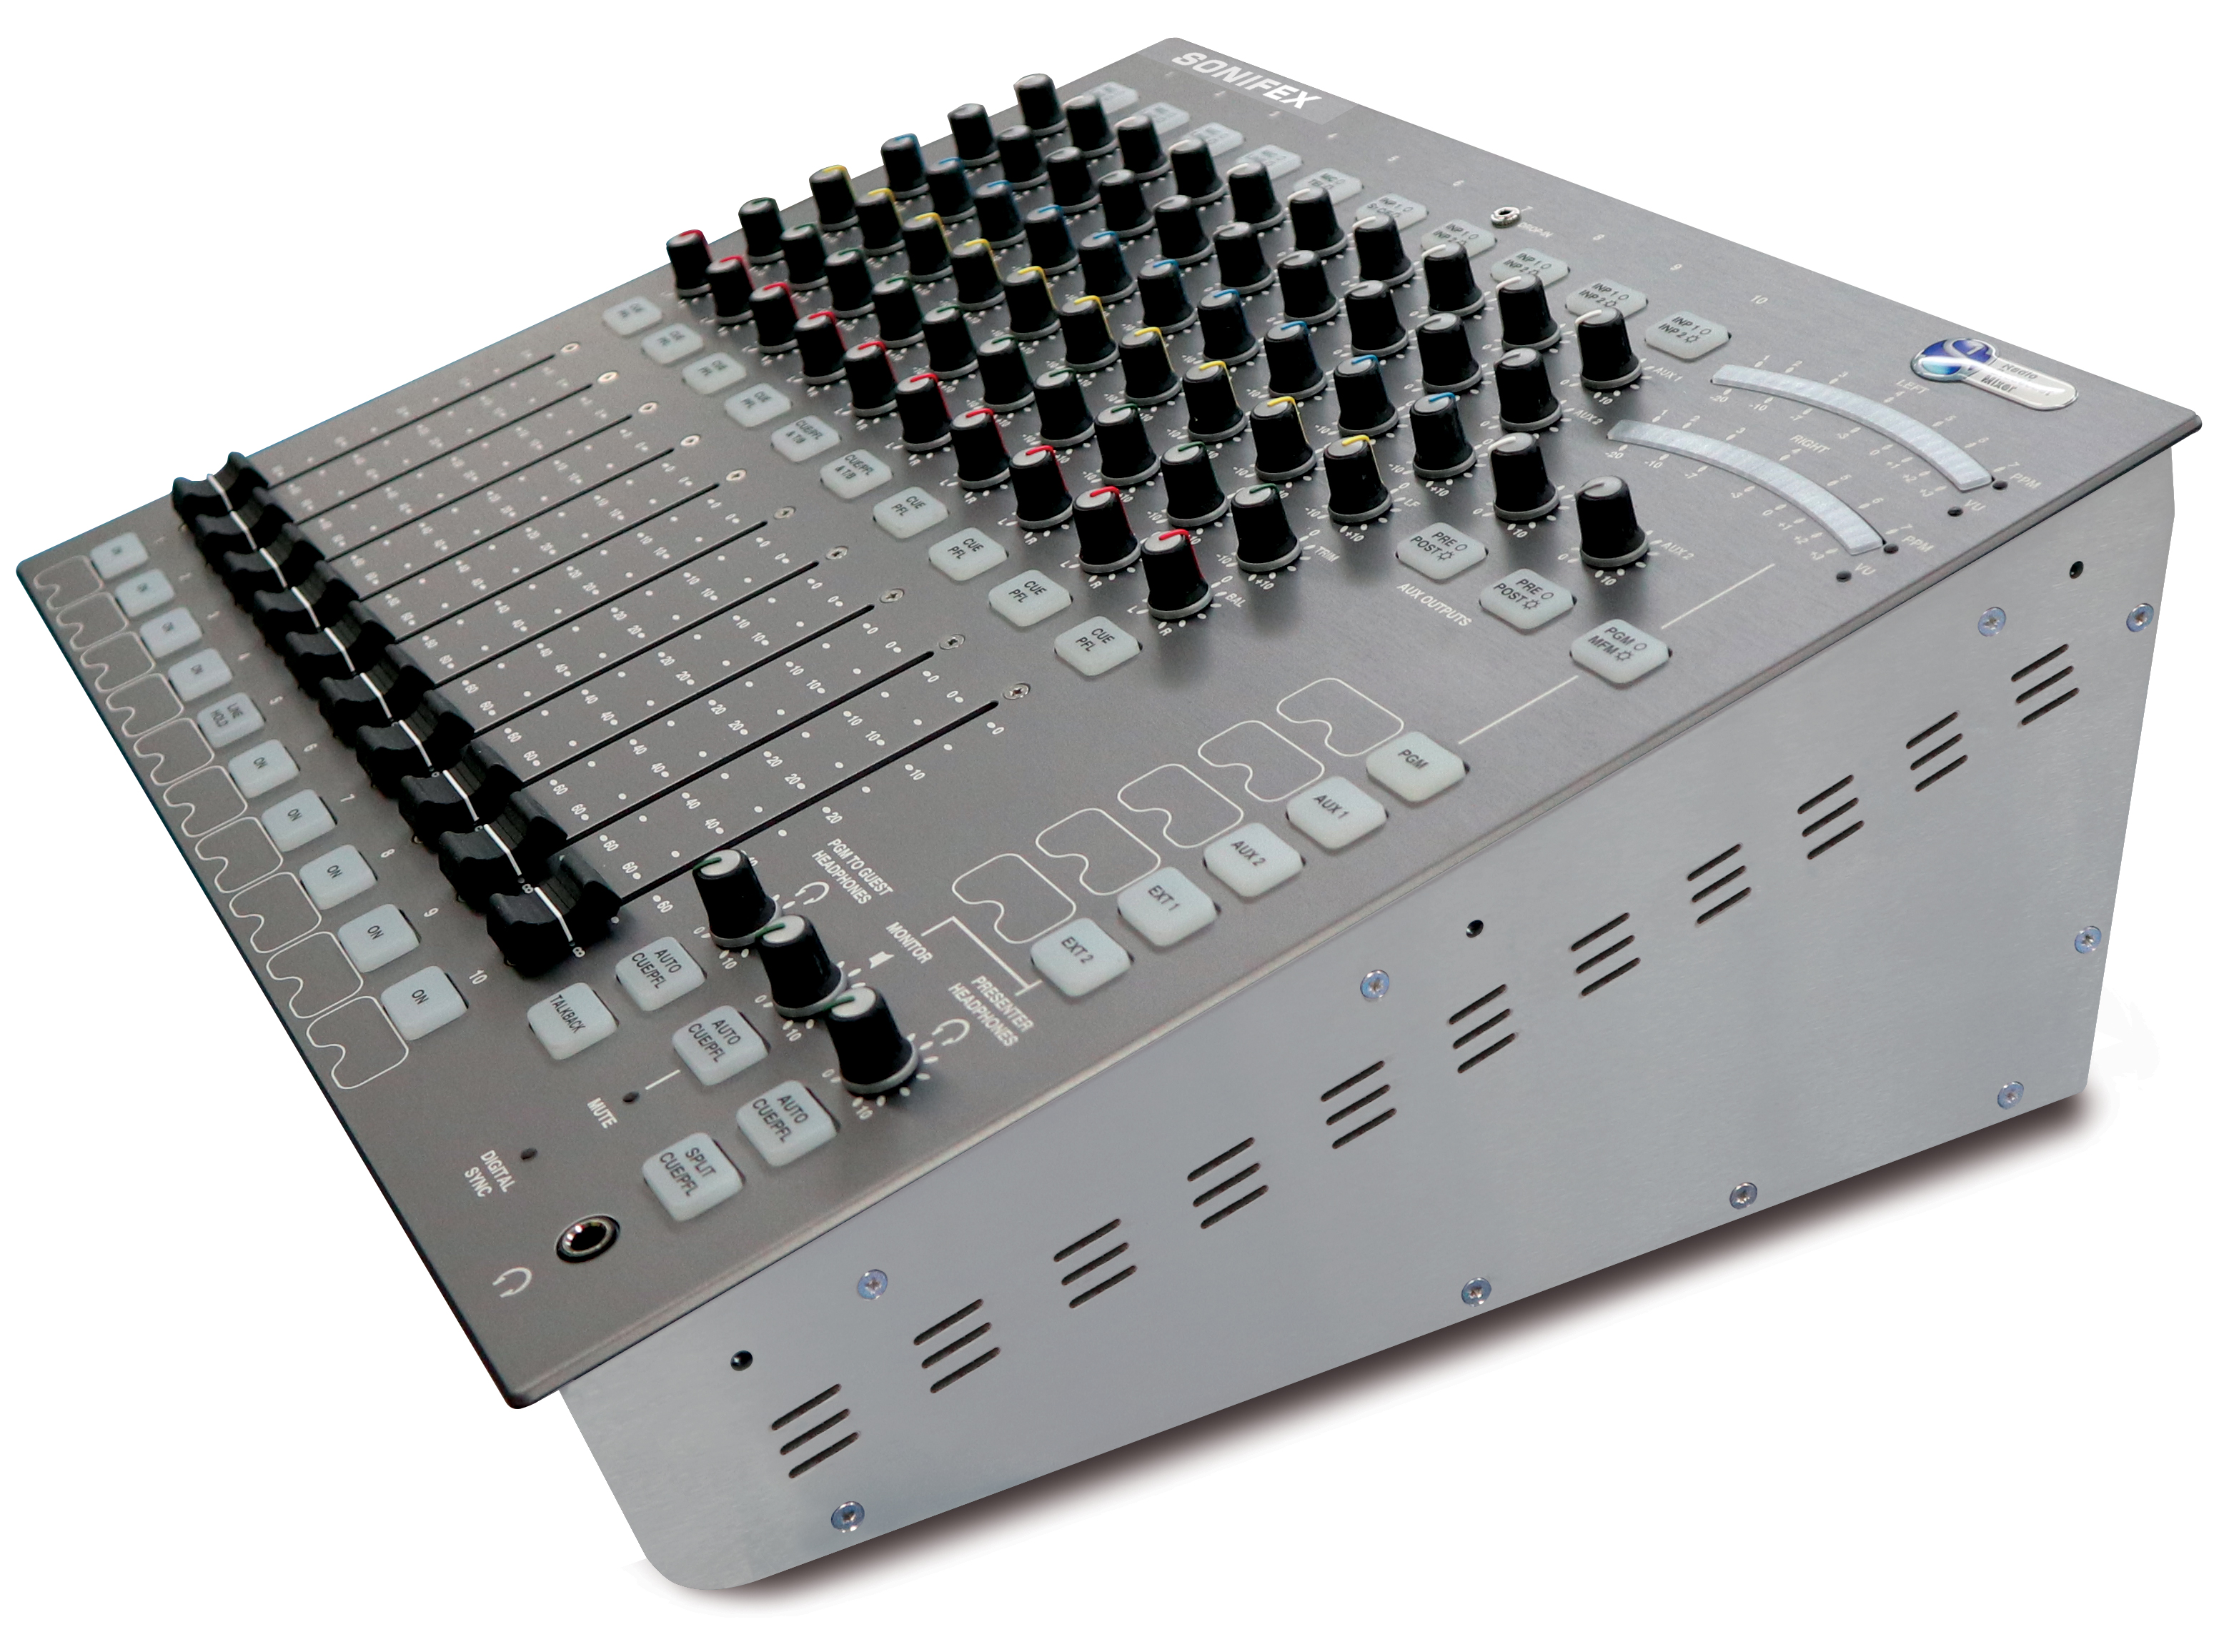 Sonifex S1 Digital Analogue Radio Broadcast Mixer The Wireless Remote Control Equipment Has Two Modes Latched High Resolution Iso